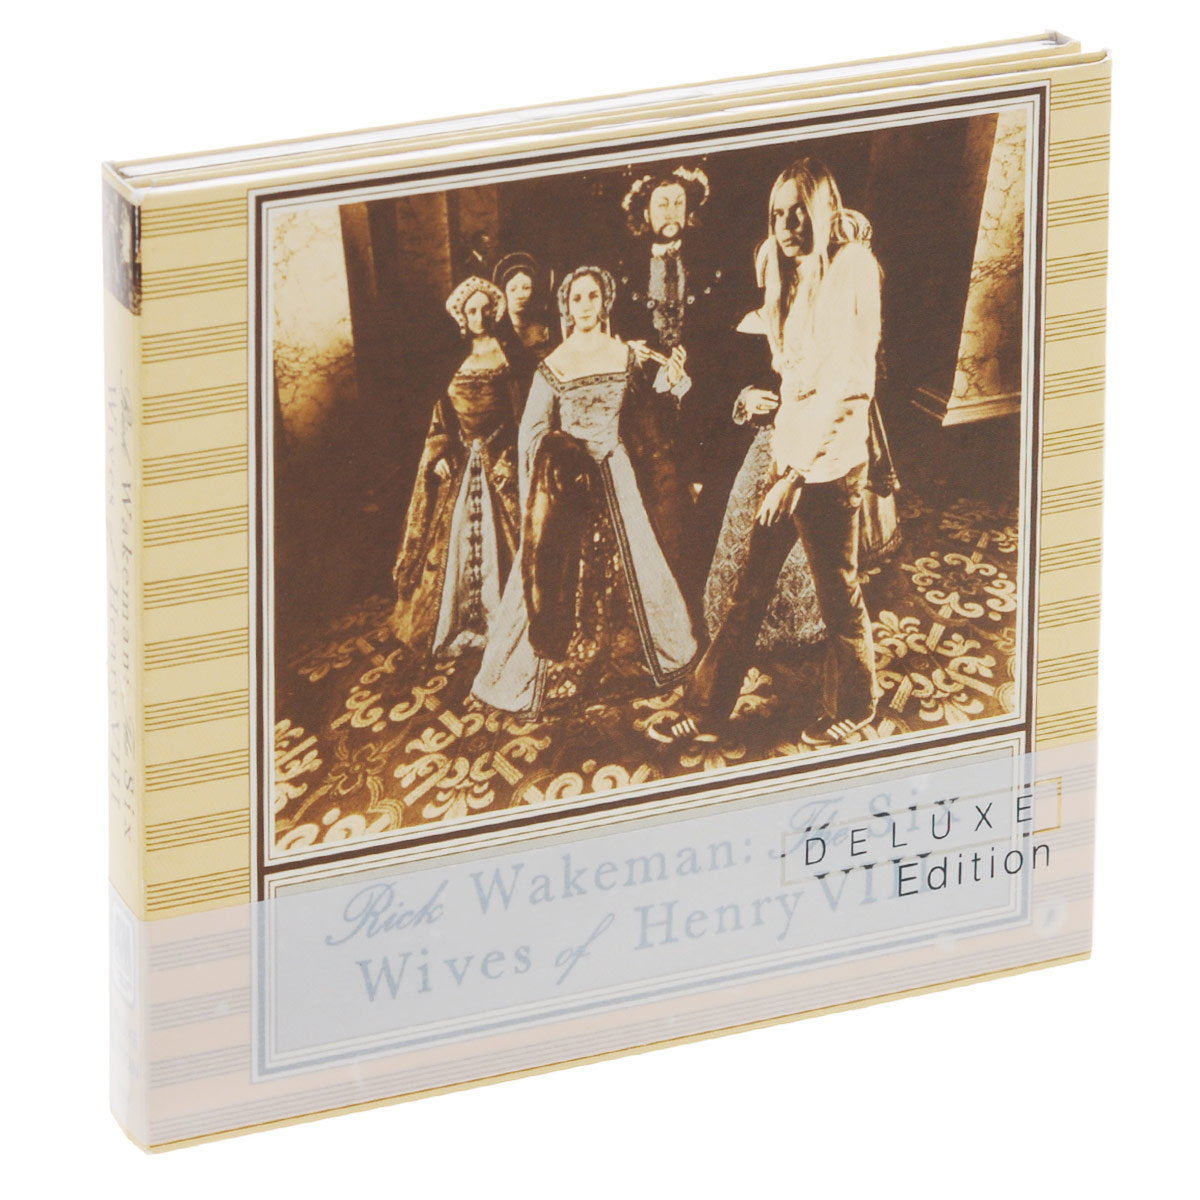 Фото - Рик Уэйкман Rick Wakeman. The Six Wives Of Henry VIII (Deluxe Edition) (CD + DVD) cd led zeppelin ii deluxe edition